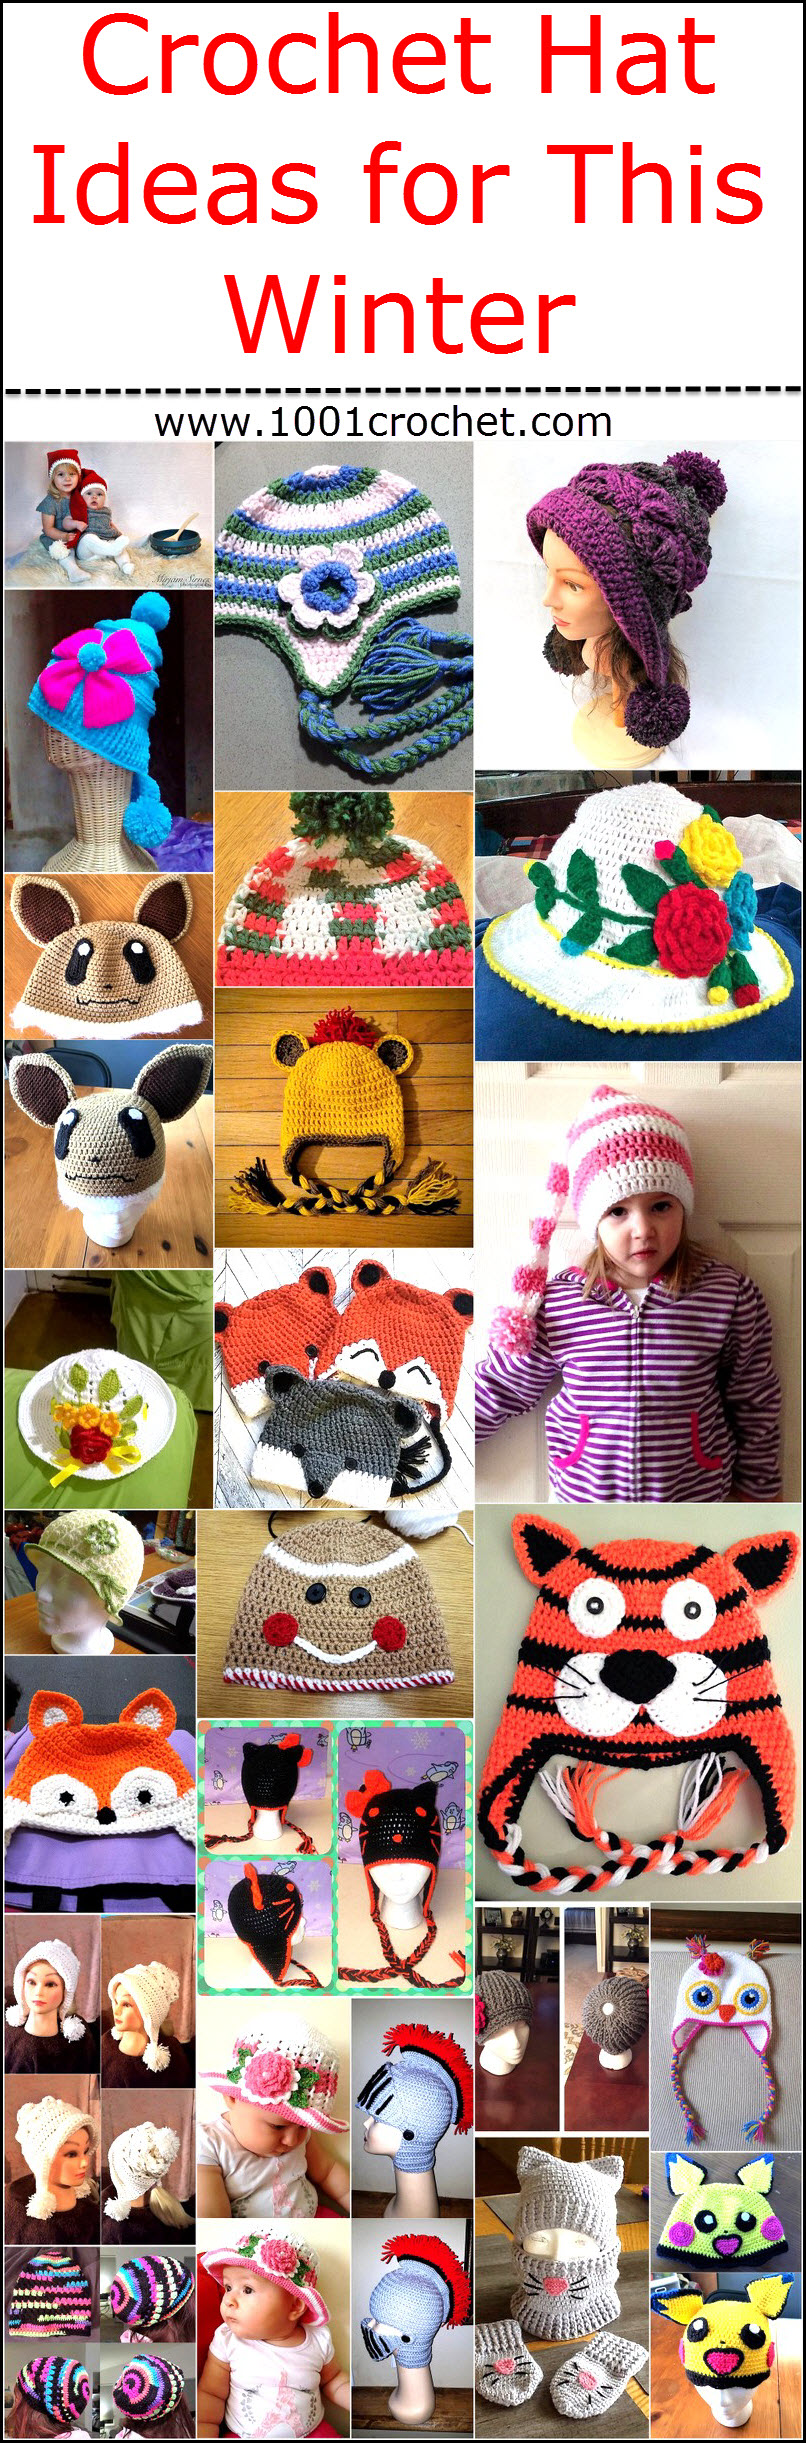 crochet-hat-ideas-for-this-winter